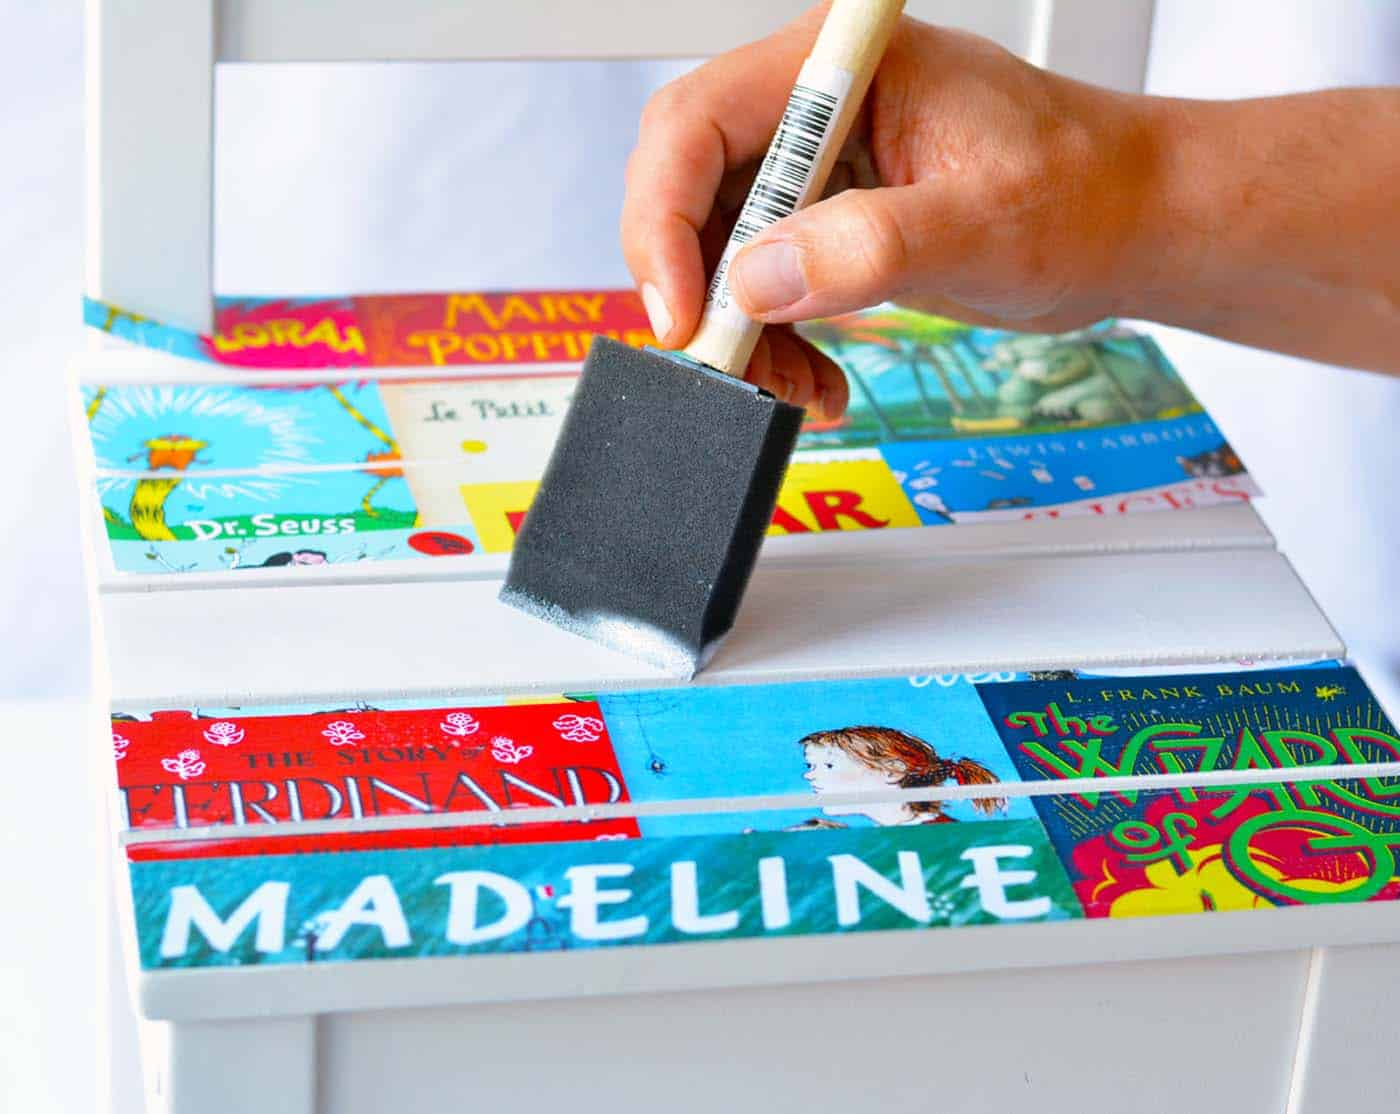 Applying book cover images to the top of a chair with Mod Podge and a foam brush